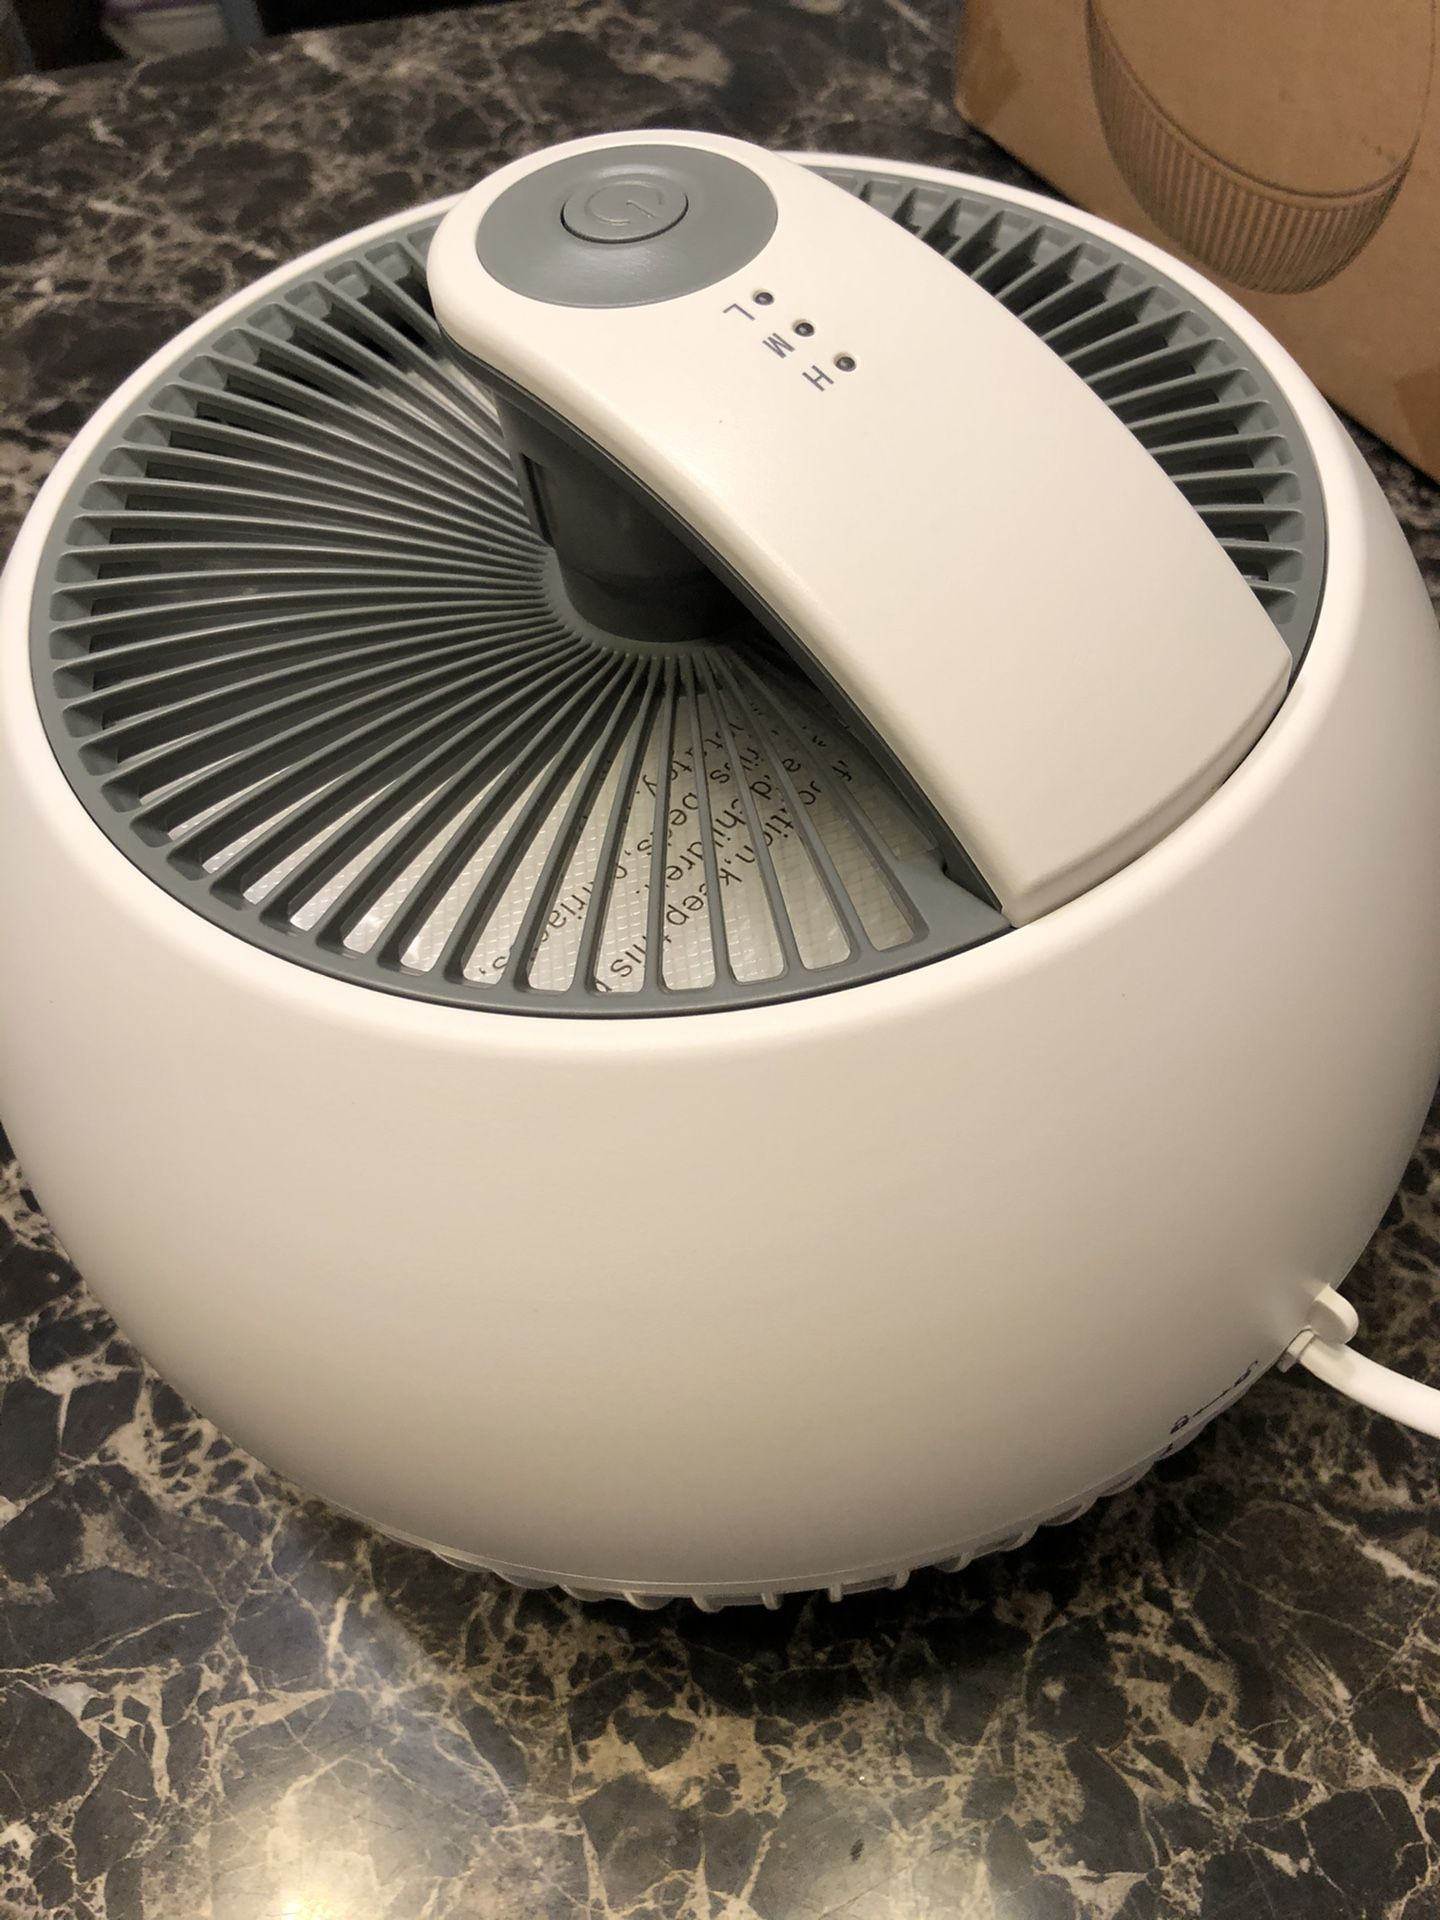 TRUSTECH Air Purifier xHome,True HEPA Filter Air Cleaner for Room with 3 Fan Speeds, 3 Stage Filter.